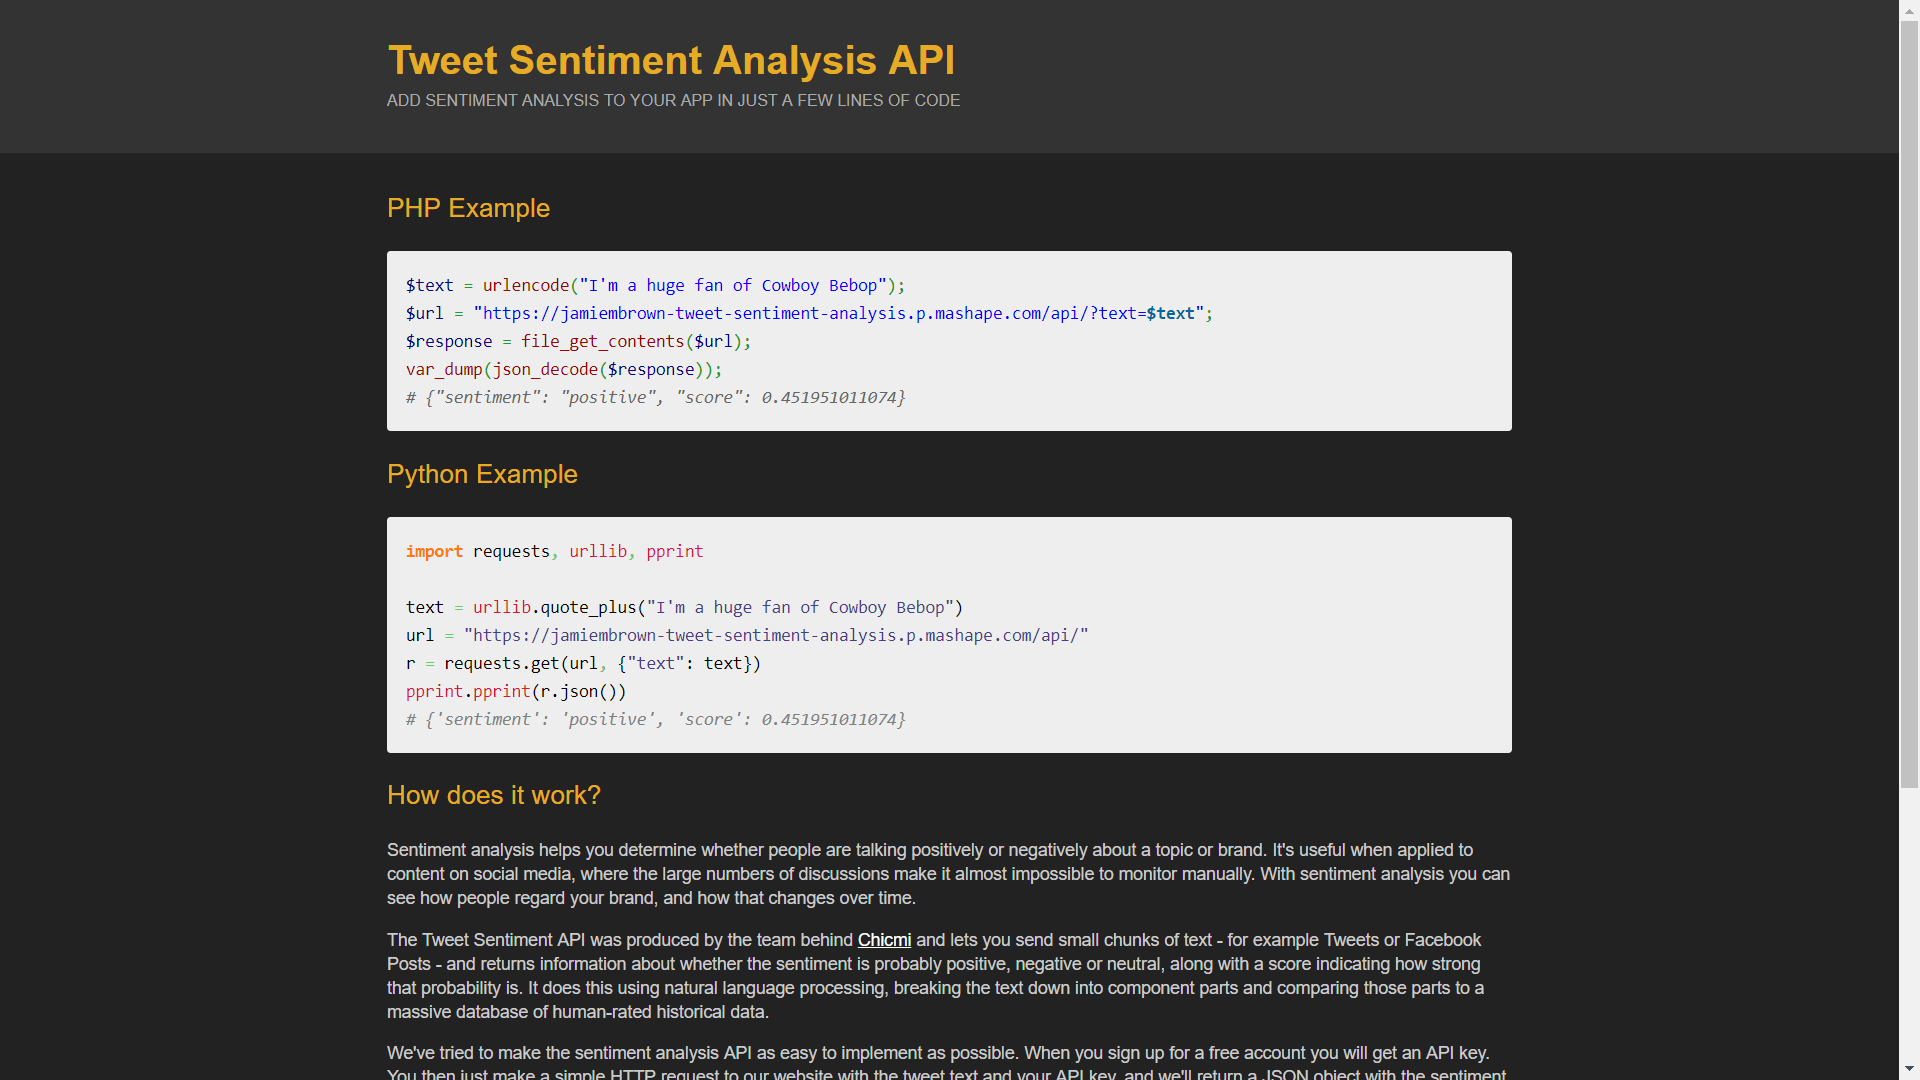 Tweet Sentiment Analysis API